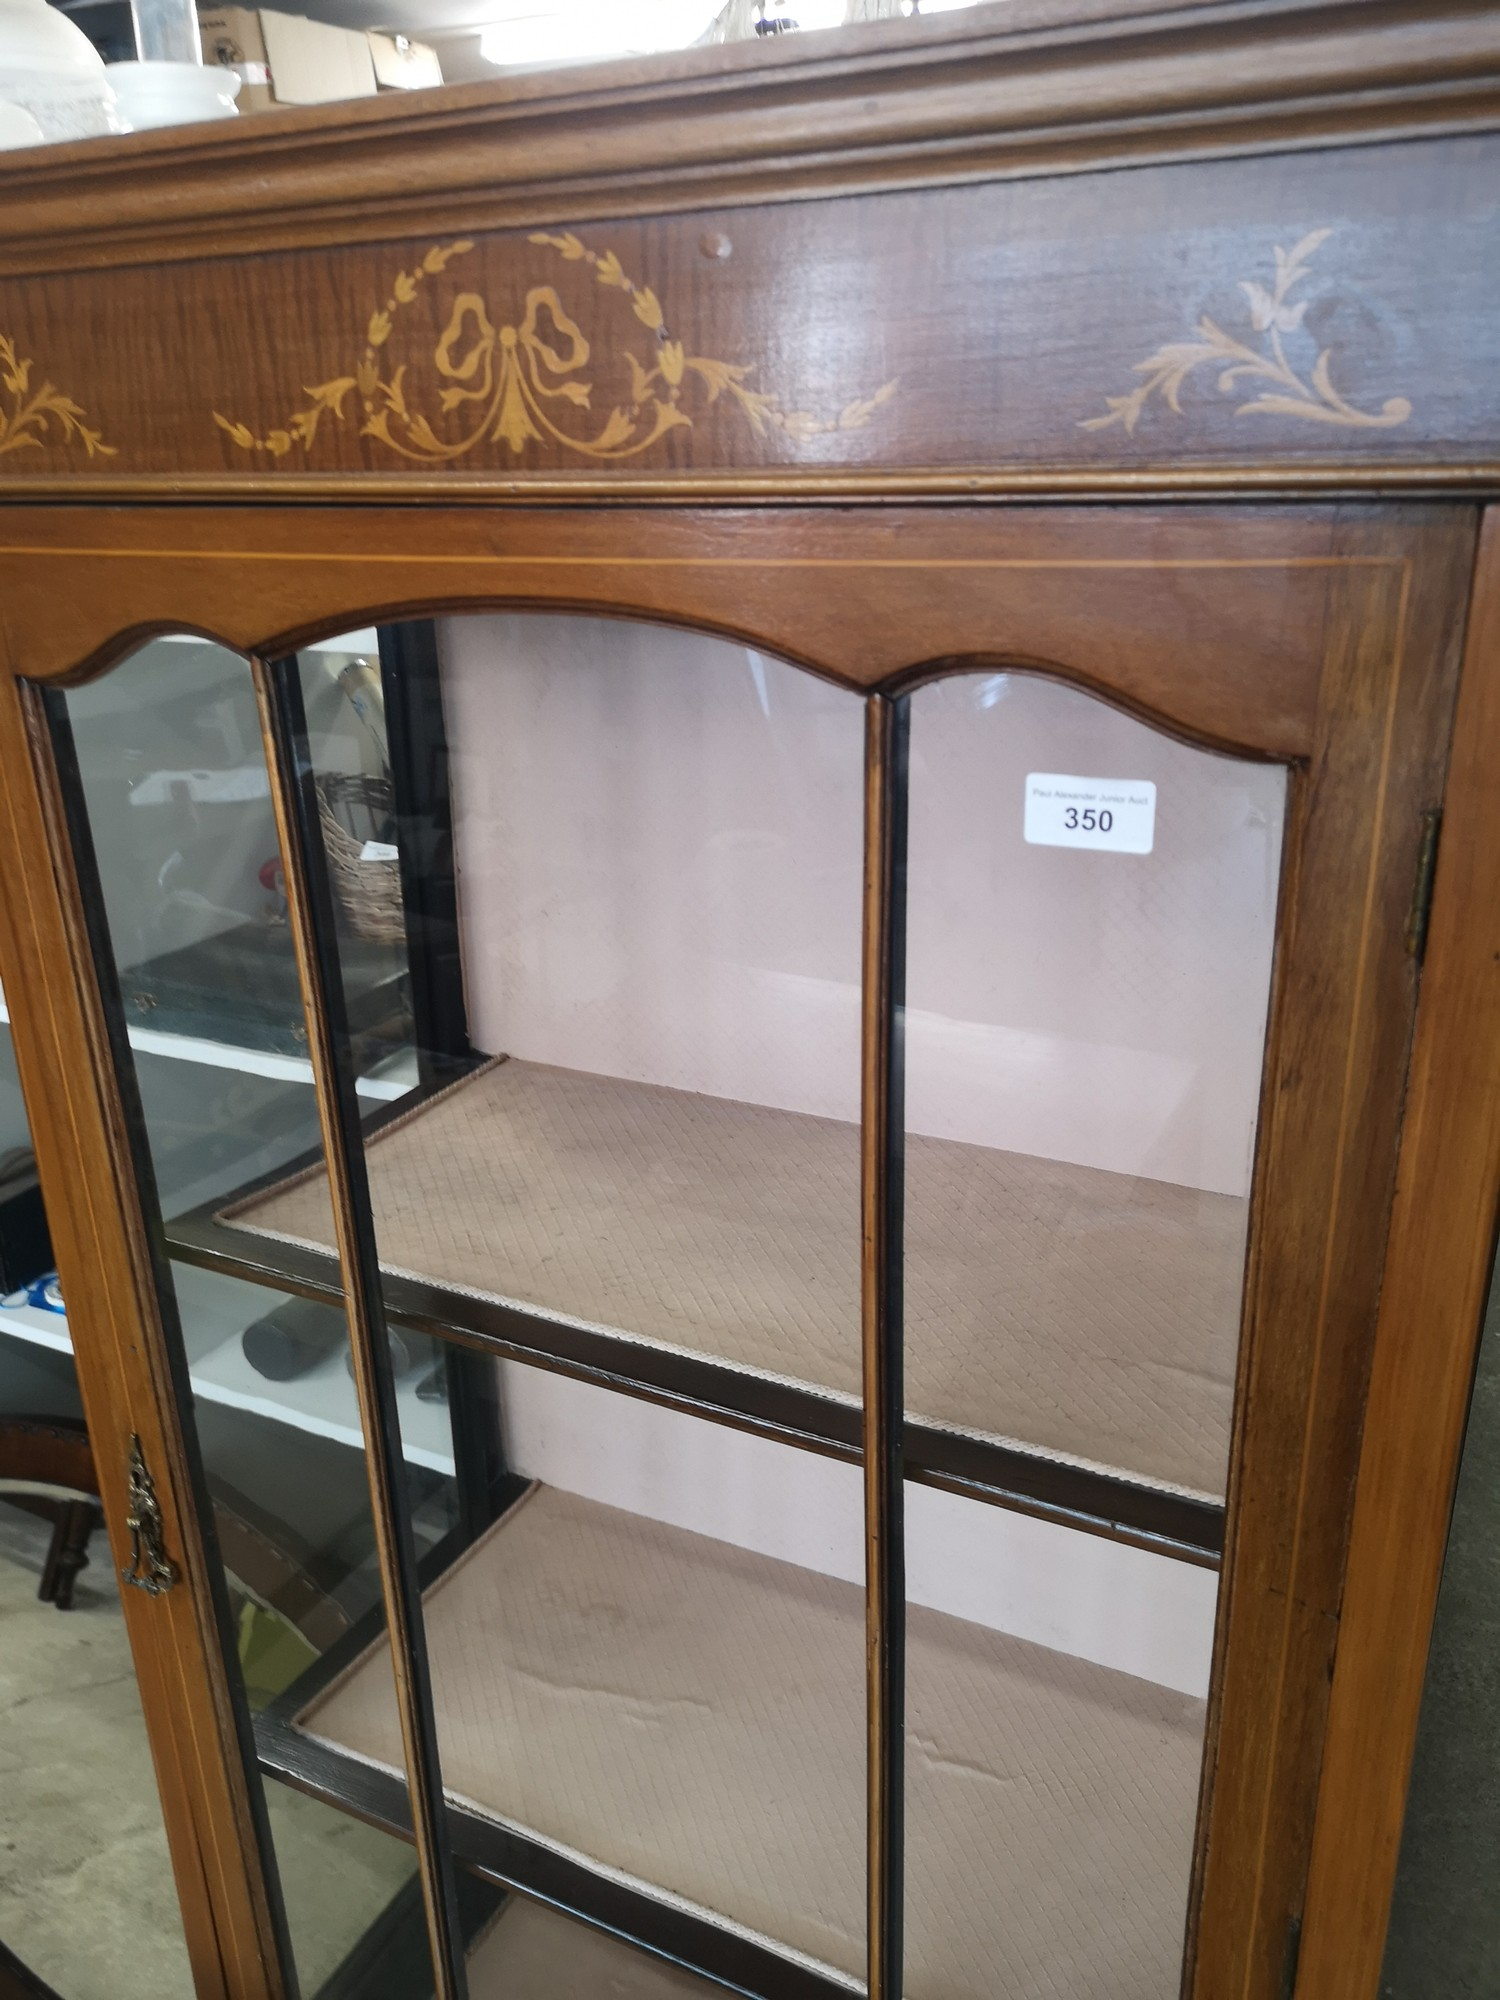 Beautiful Edwardian Inlaid 3 section display cabinet with inlays to top. - Image 4 of 4